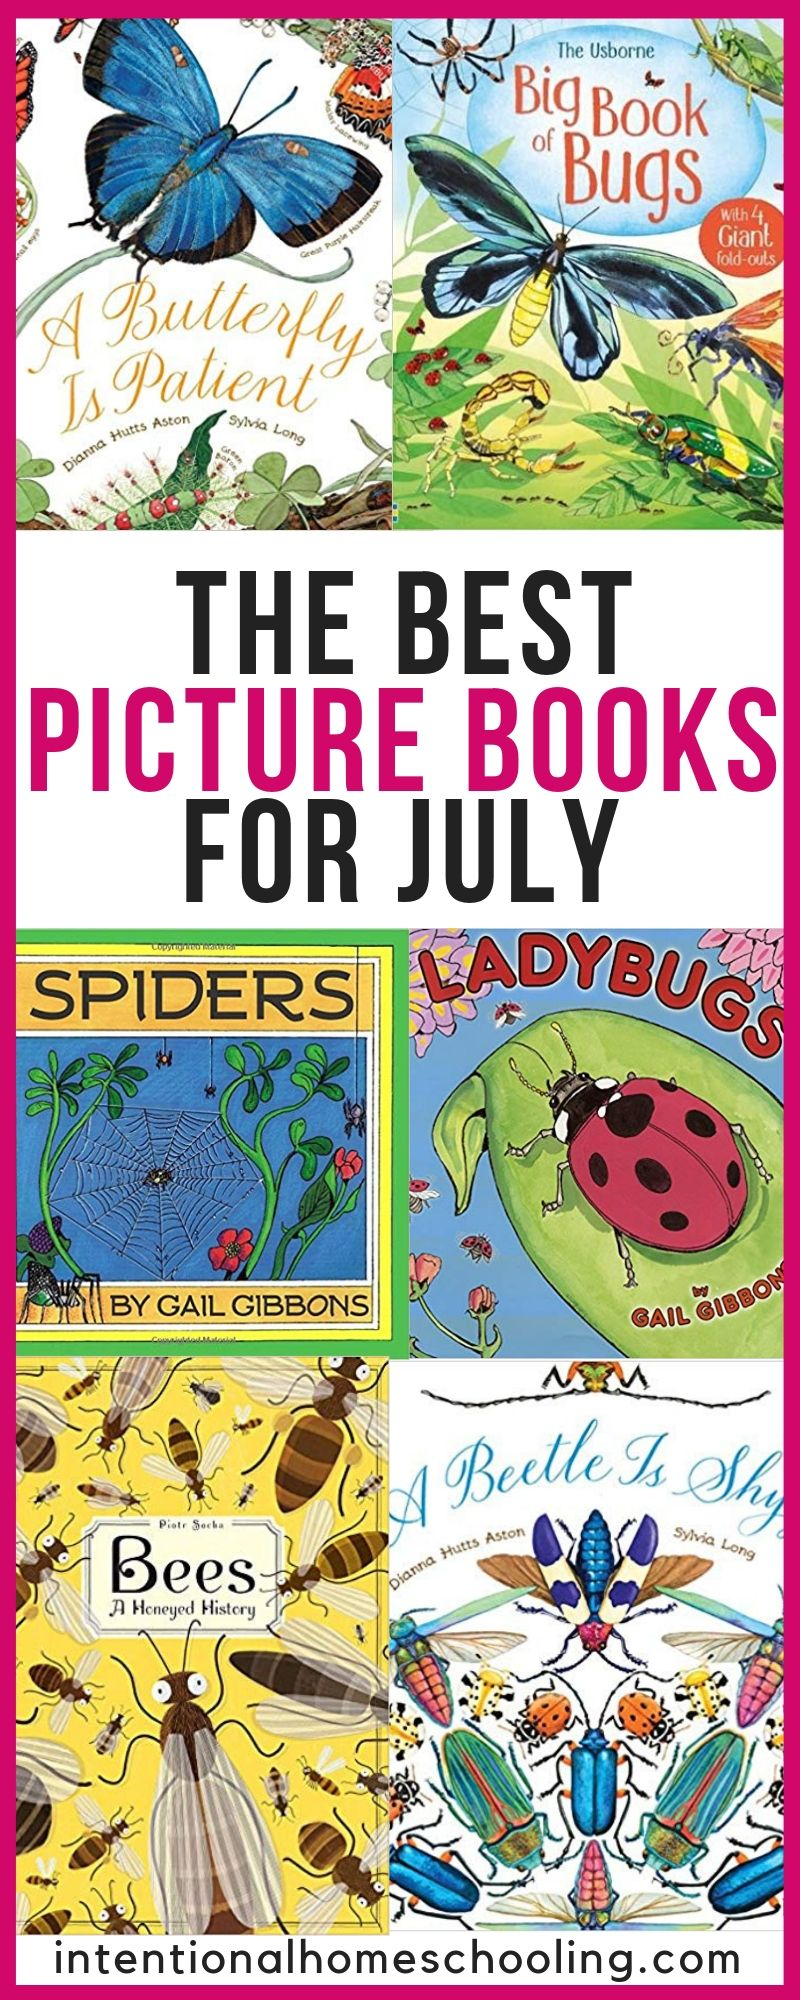 The Best Picture Books for July - The Best Picture Books About Bugs and Insects